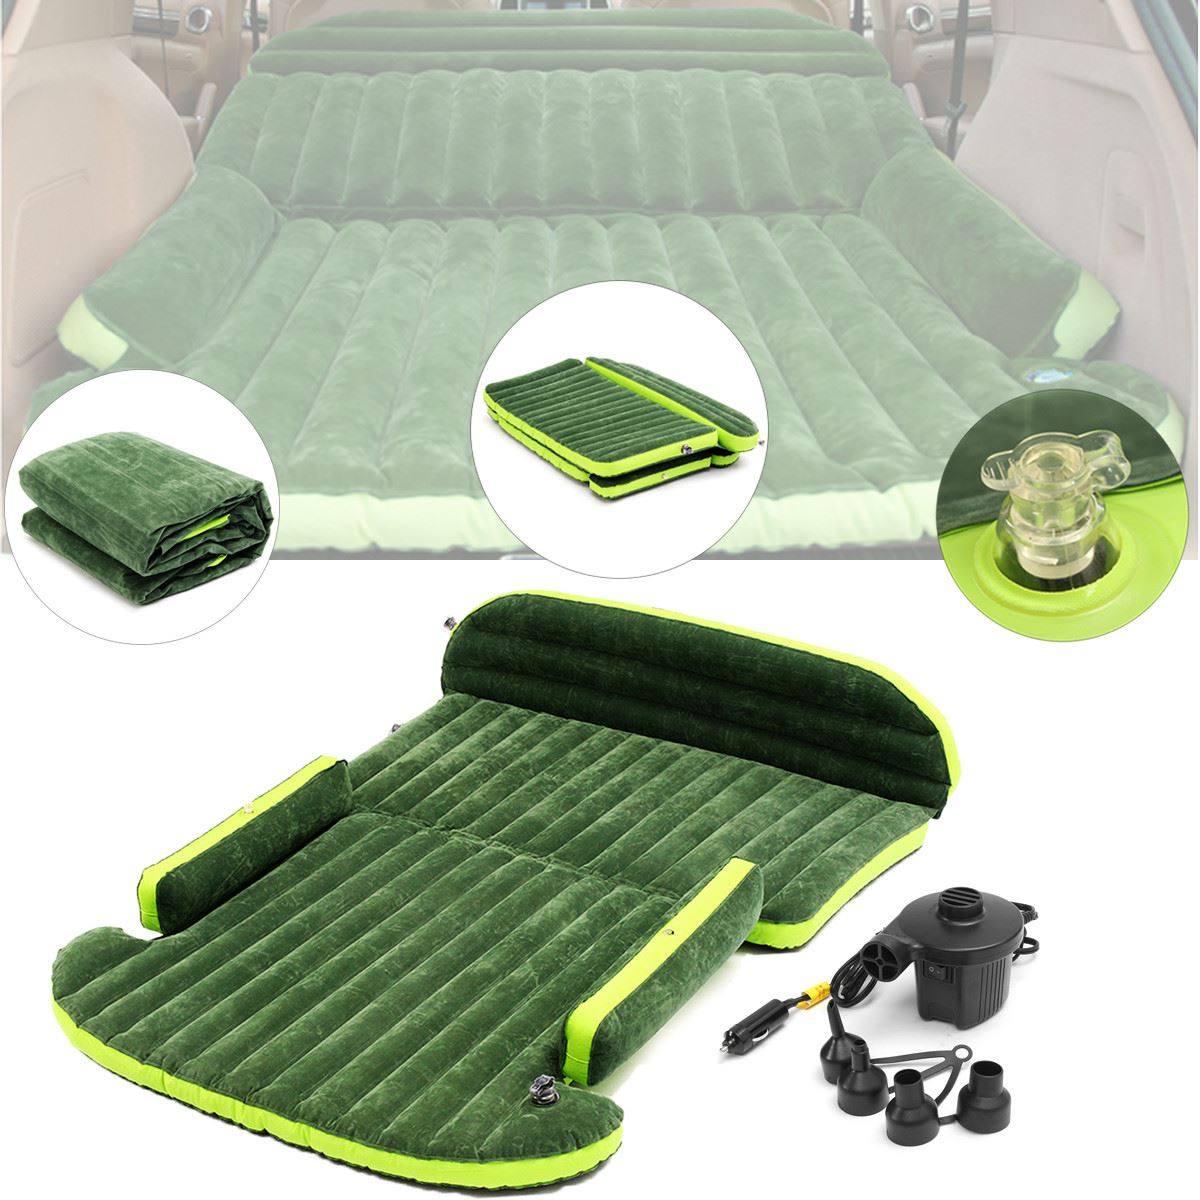 SUV Inflatable Air mattress with Air Pump Tapete Intex Car Back Seat Sleeping Rest Bed Camping Mat Mattresses 180cm x 128cm durable thicken pvc car travel inflatable bed automotive air mattress camping mat with air pump